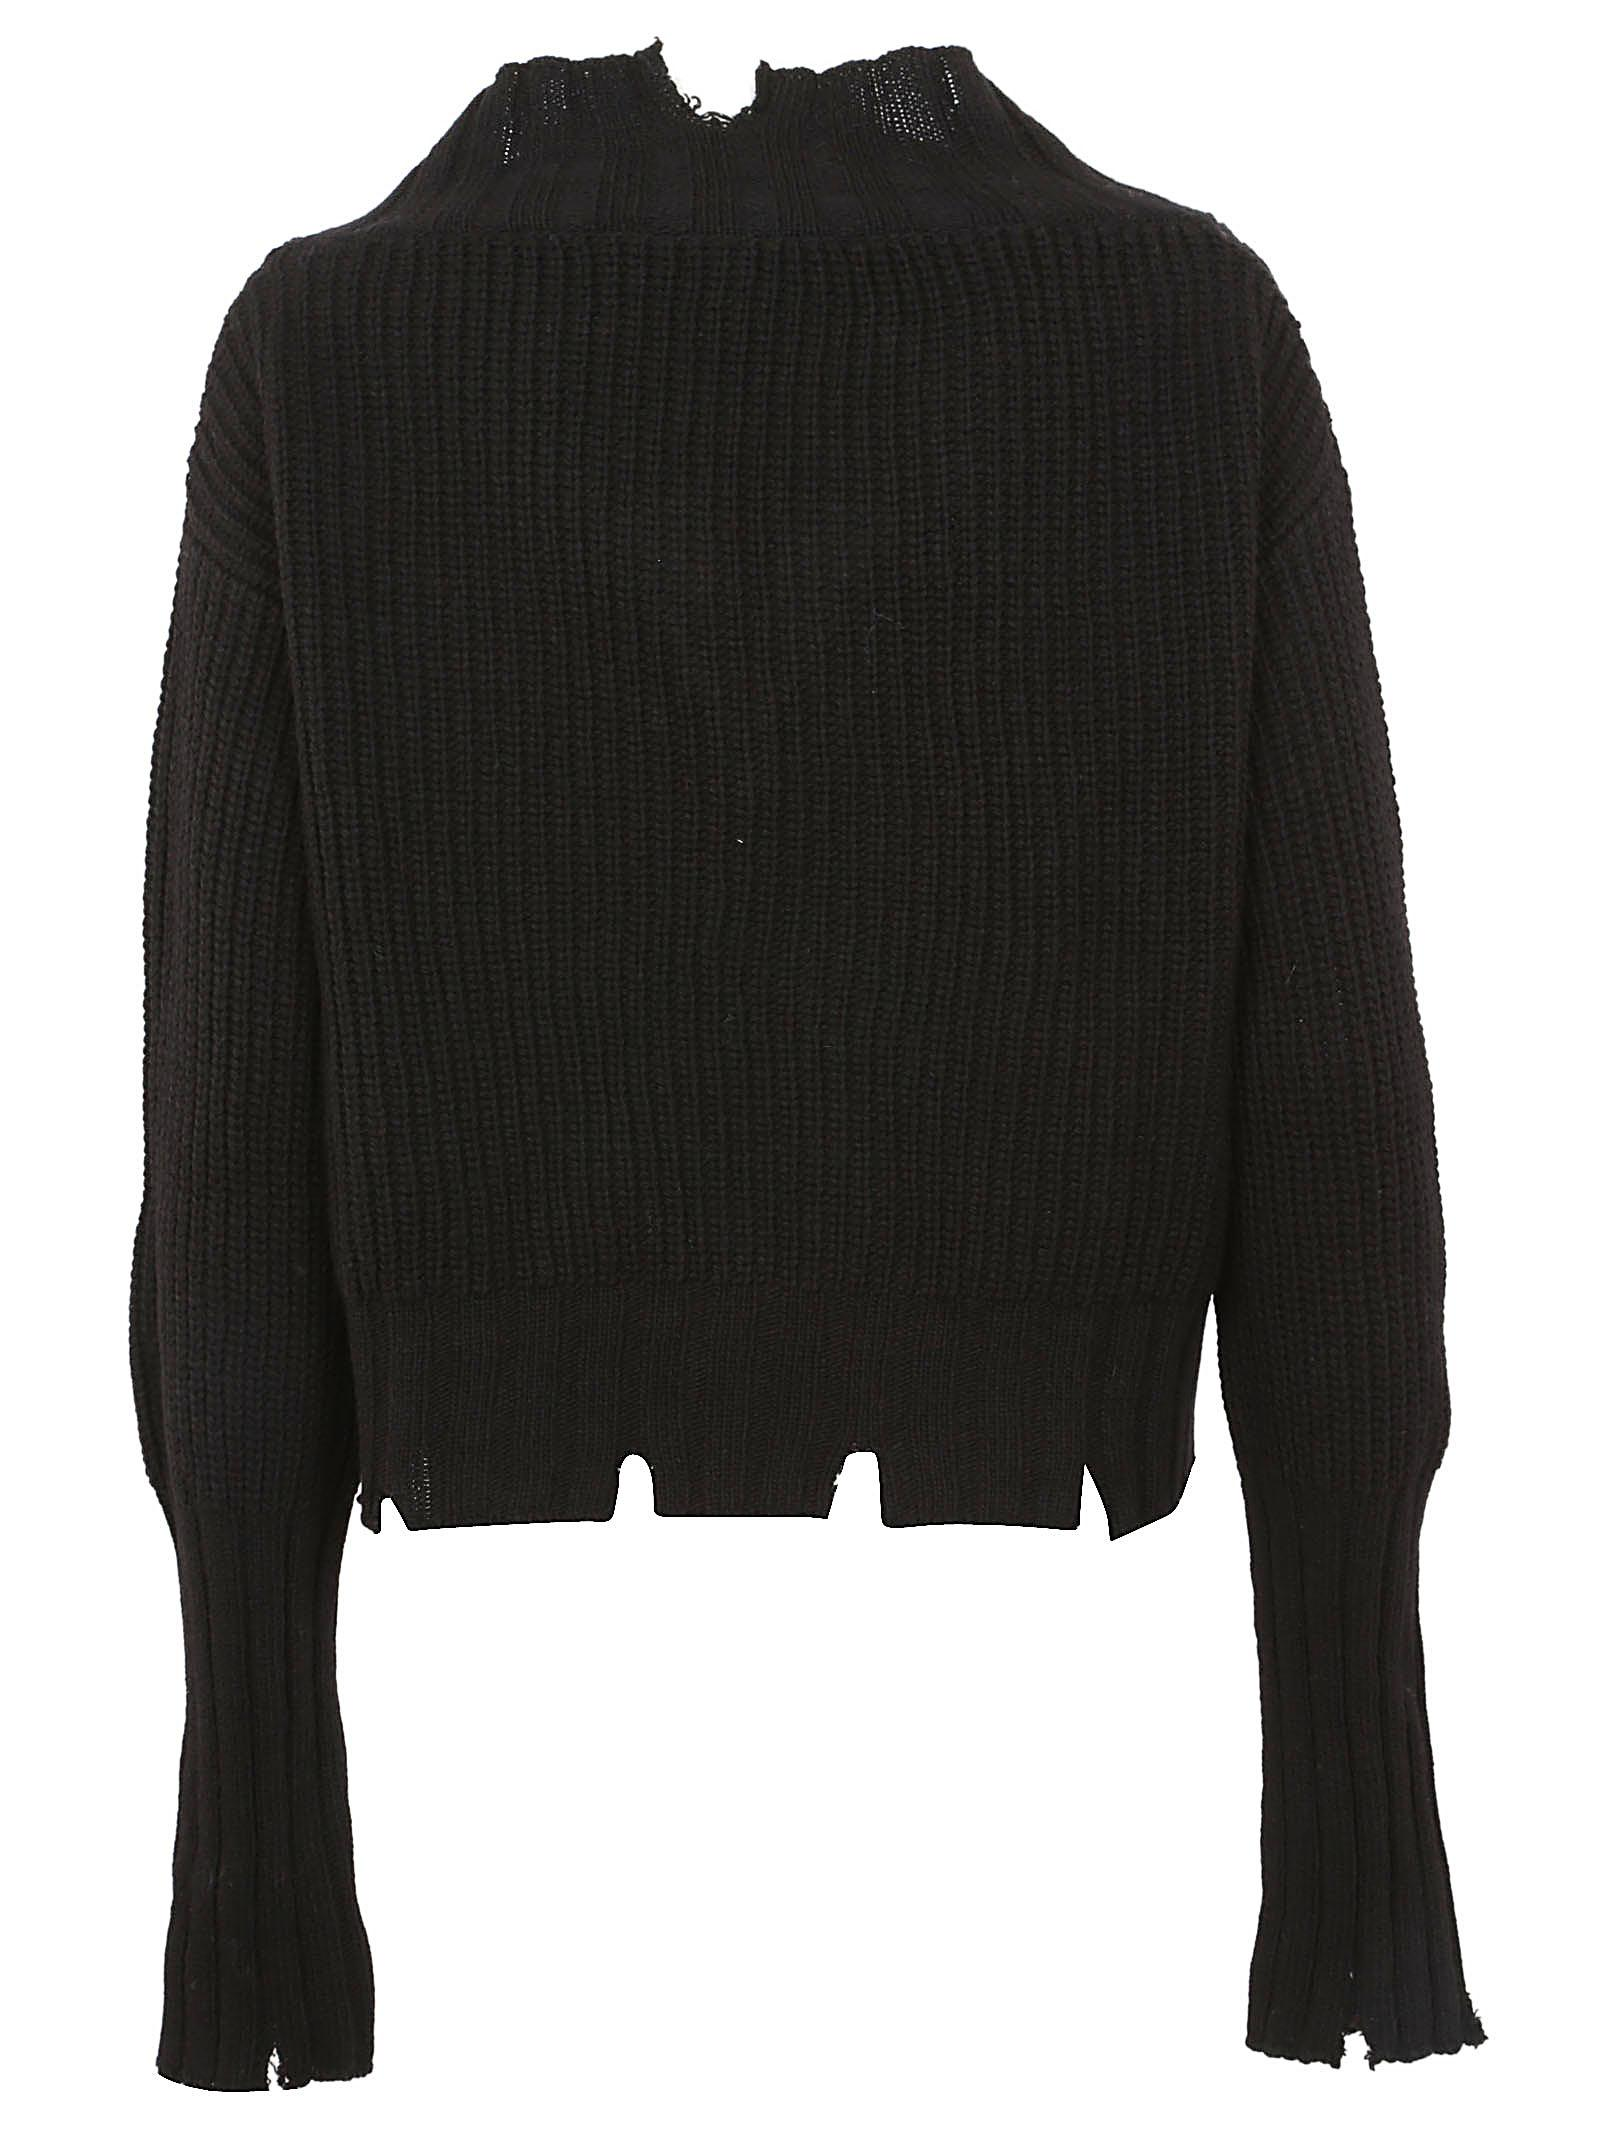 Knit Ripped Sweater Black Lyst View Edge Fullscreen Msgm Chunky qFETS